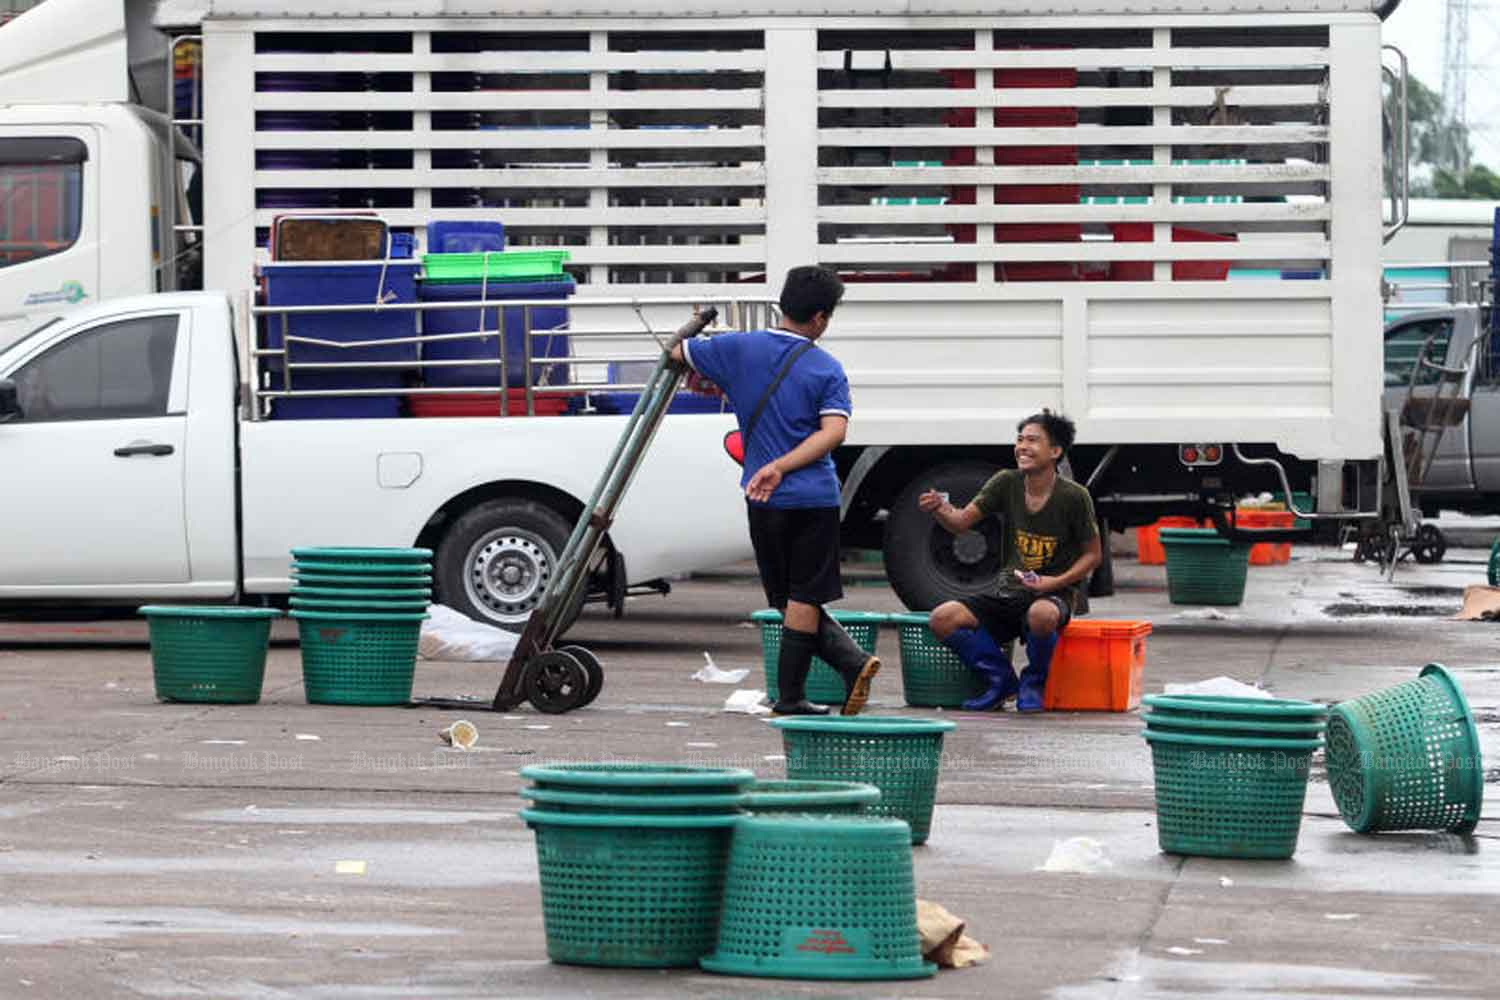 Workers rest at Talay Thai market in Muang district of Samut Sakhon province. (Bangkok Post file photo)